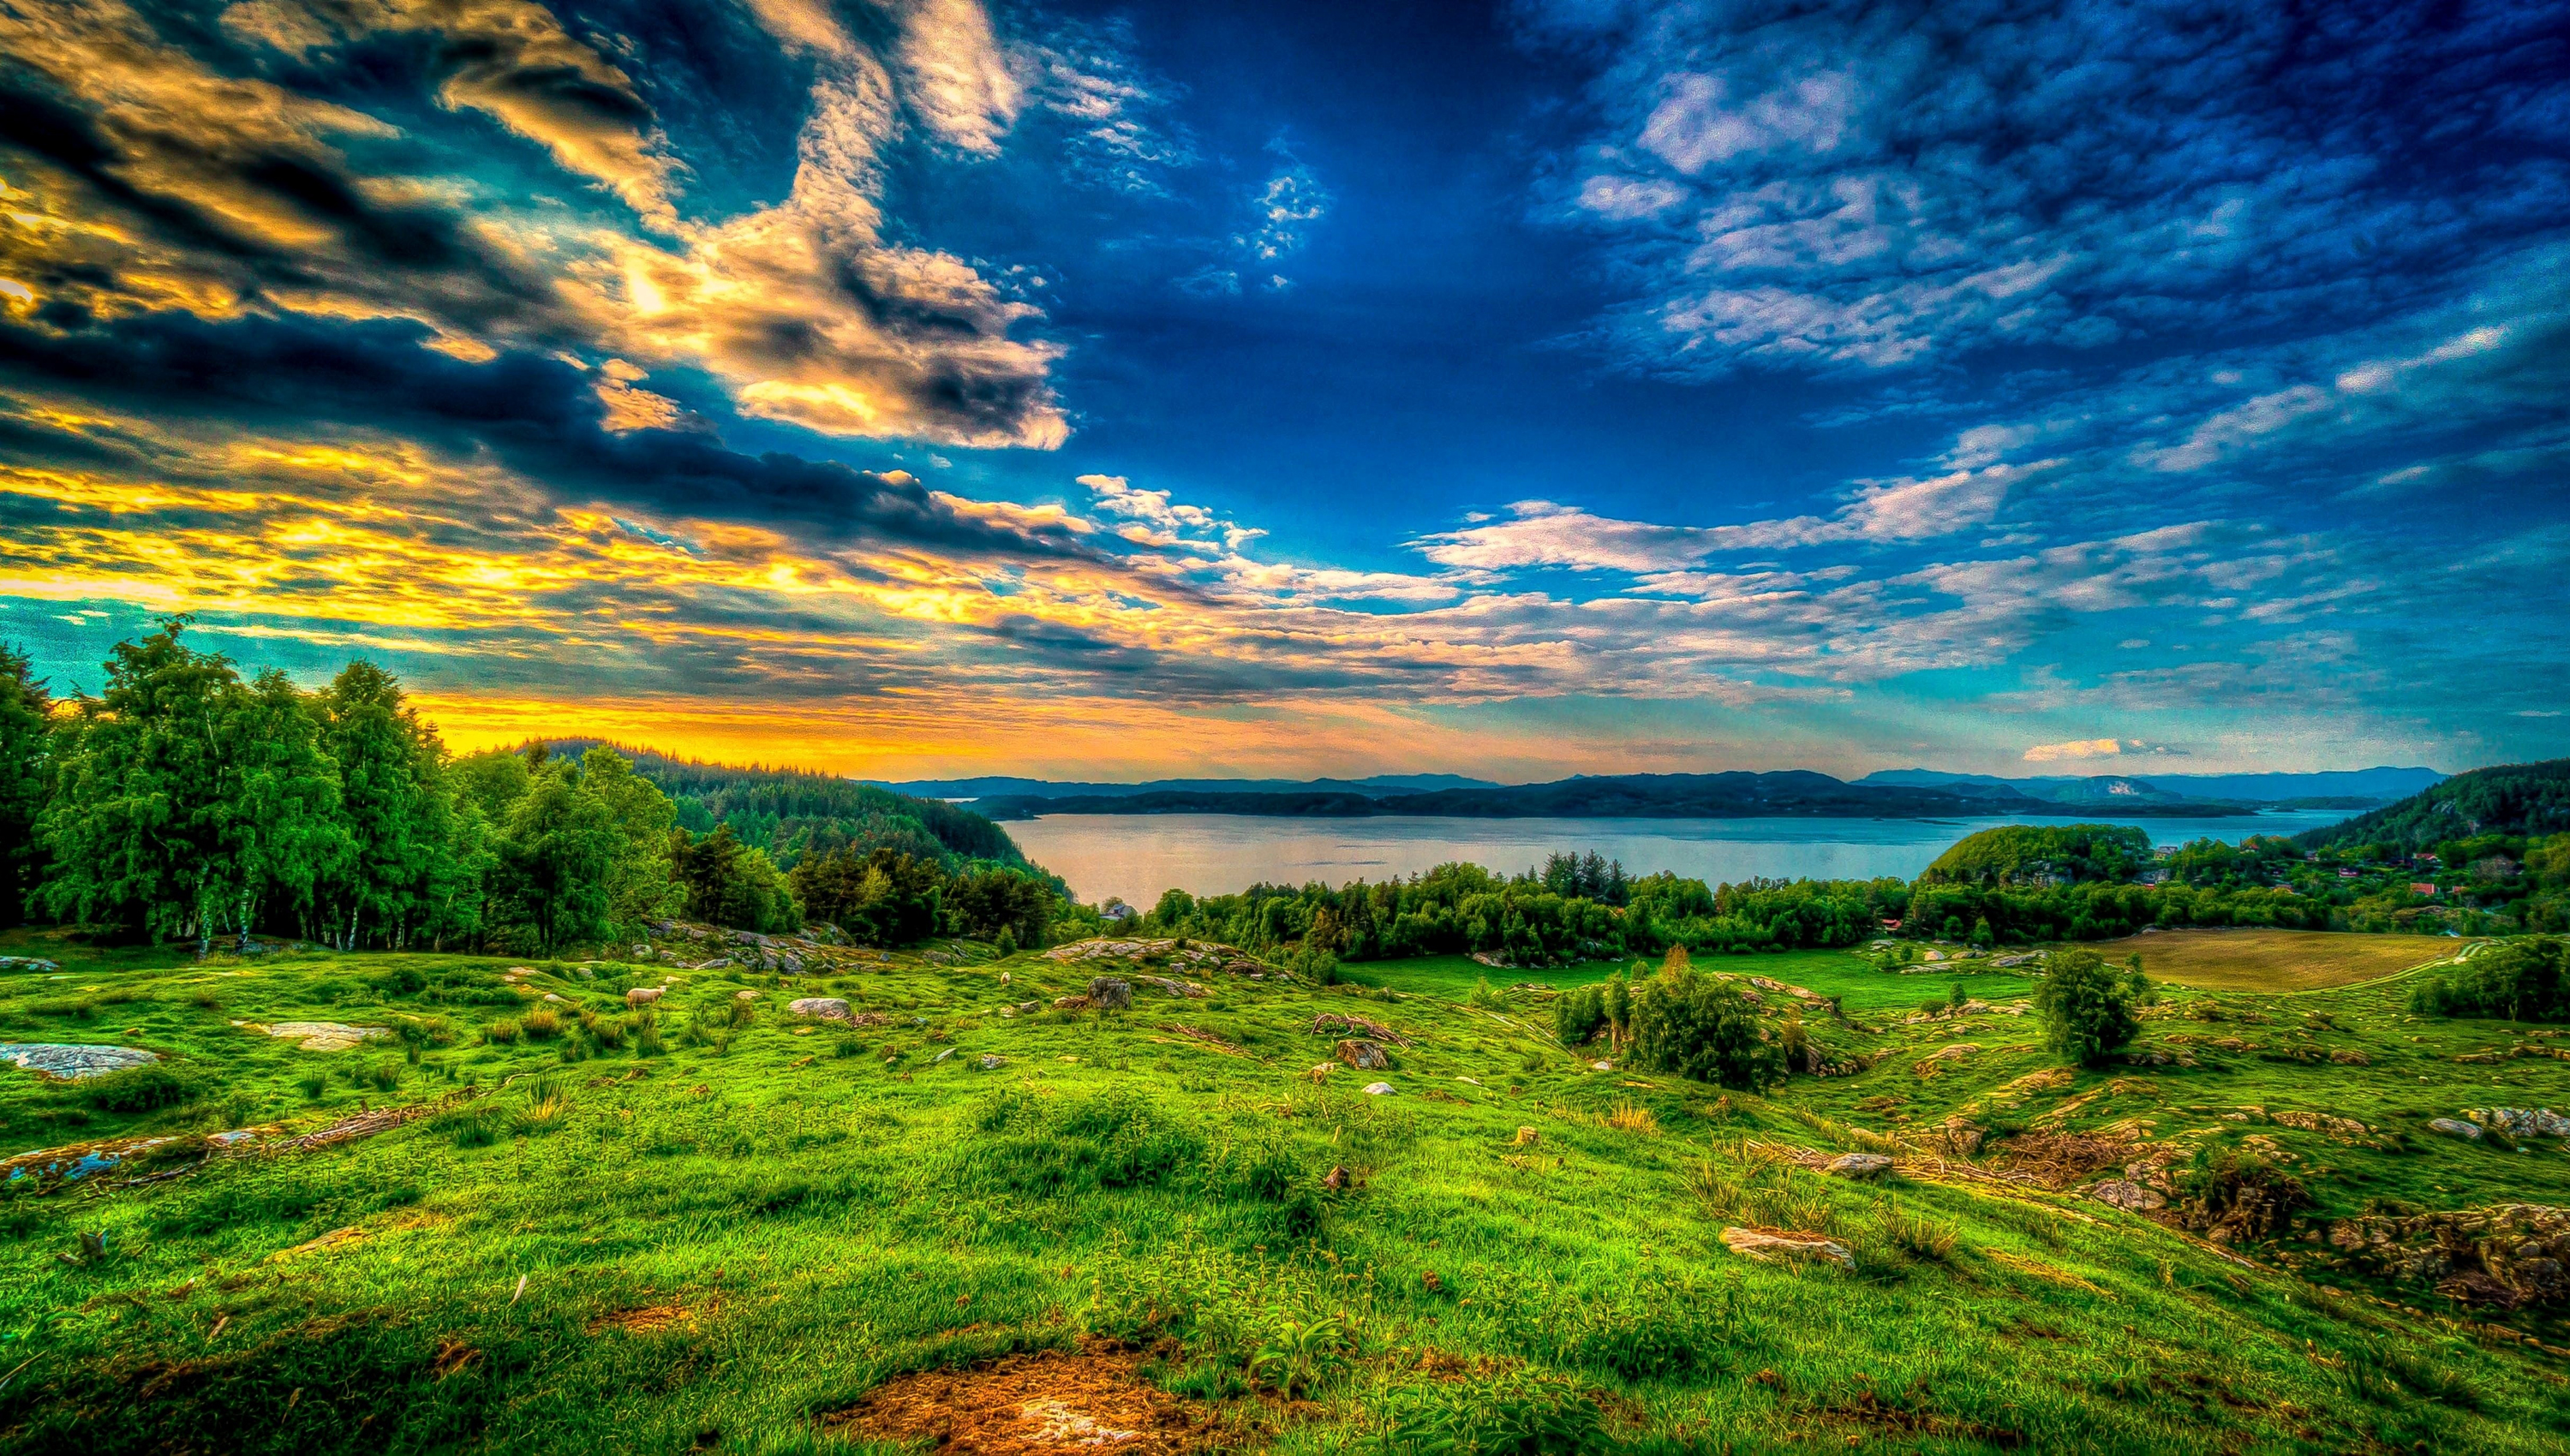 background hd nature